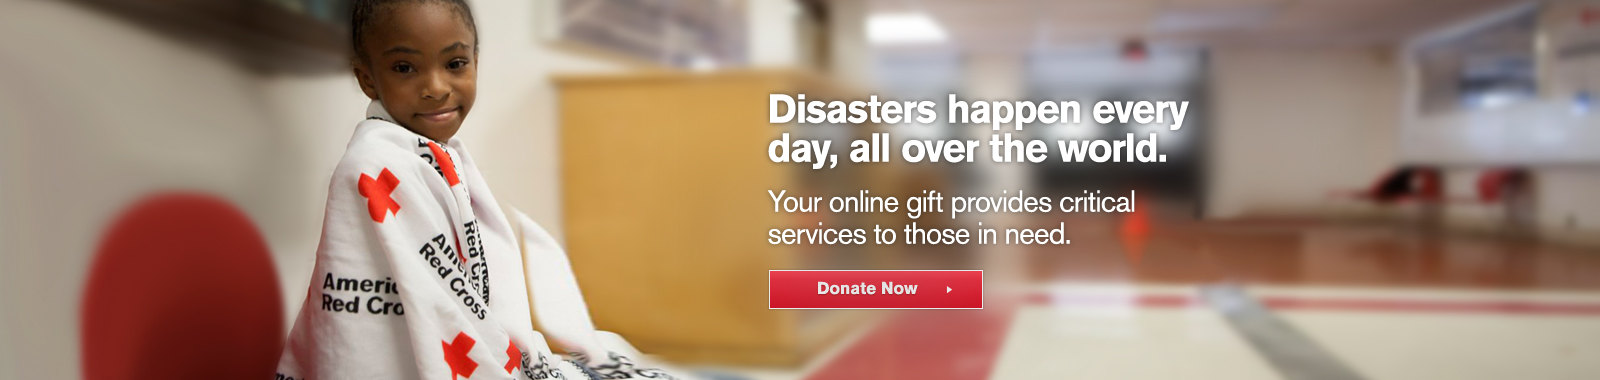 Disasters happen every day.